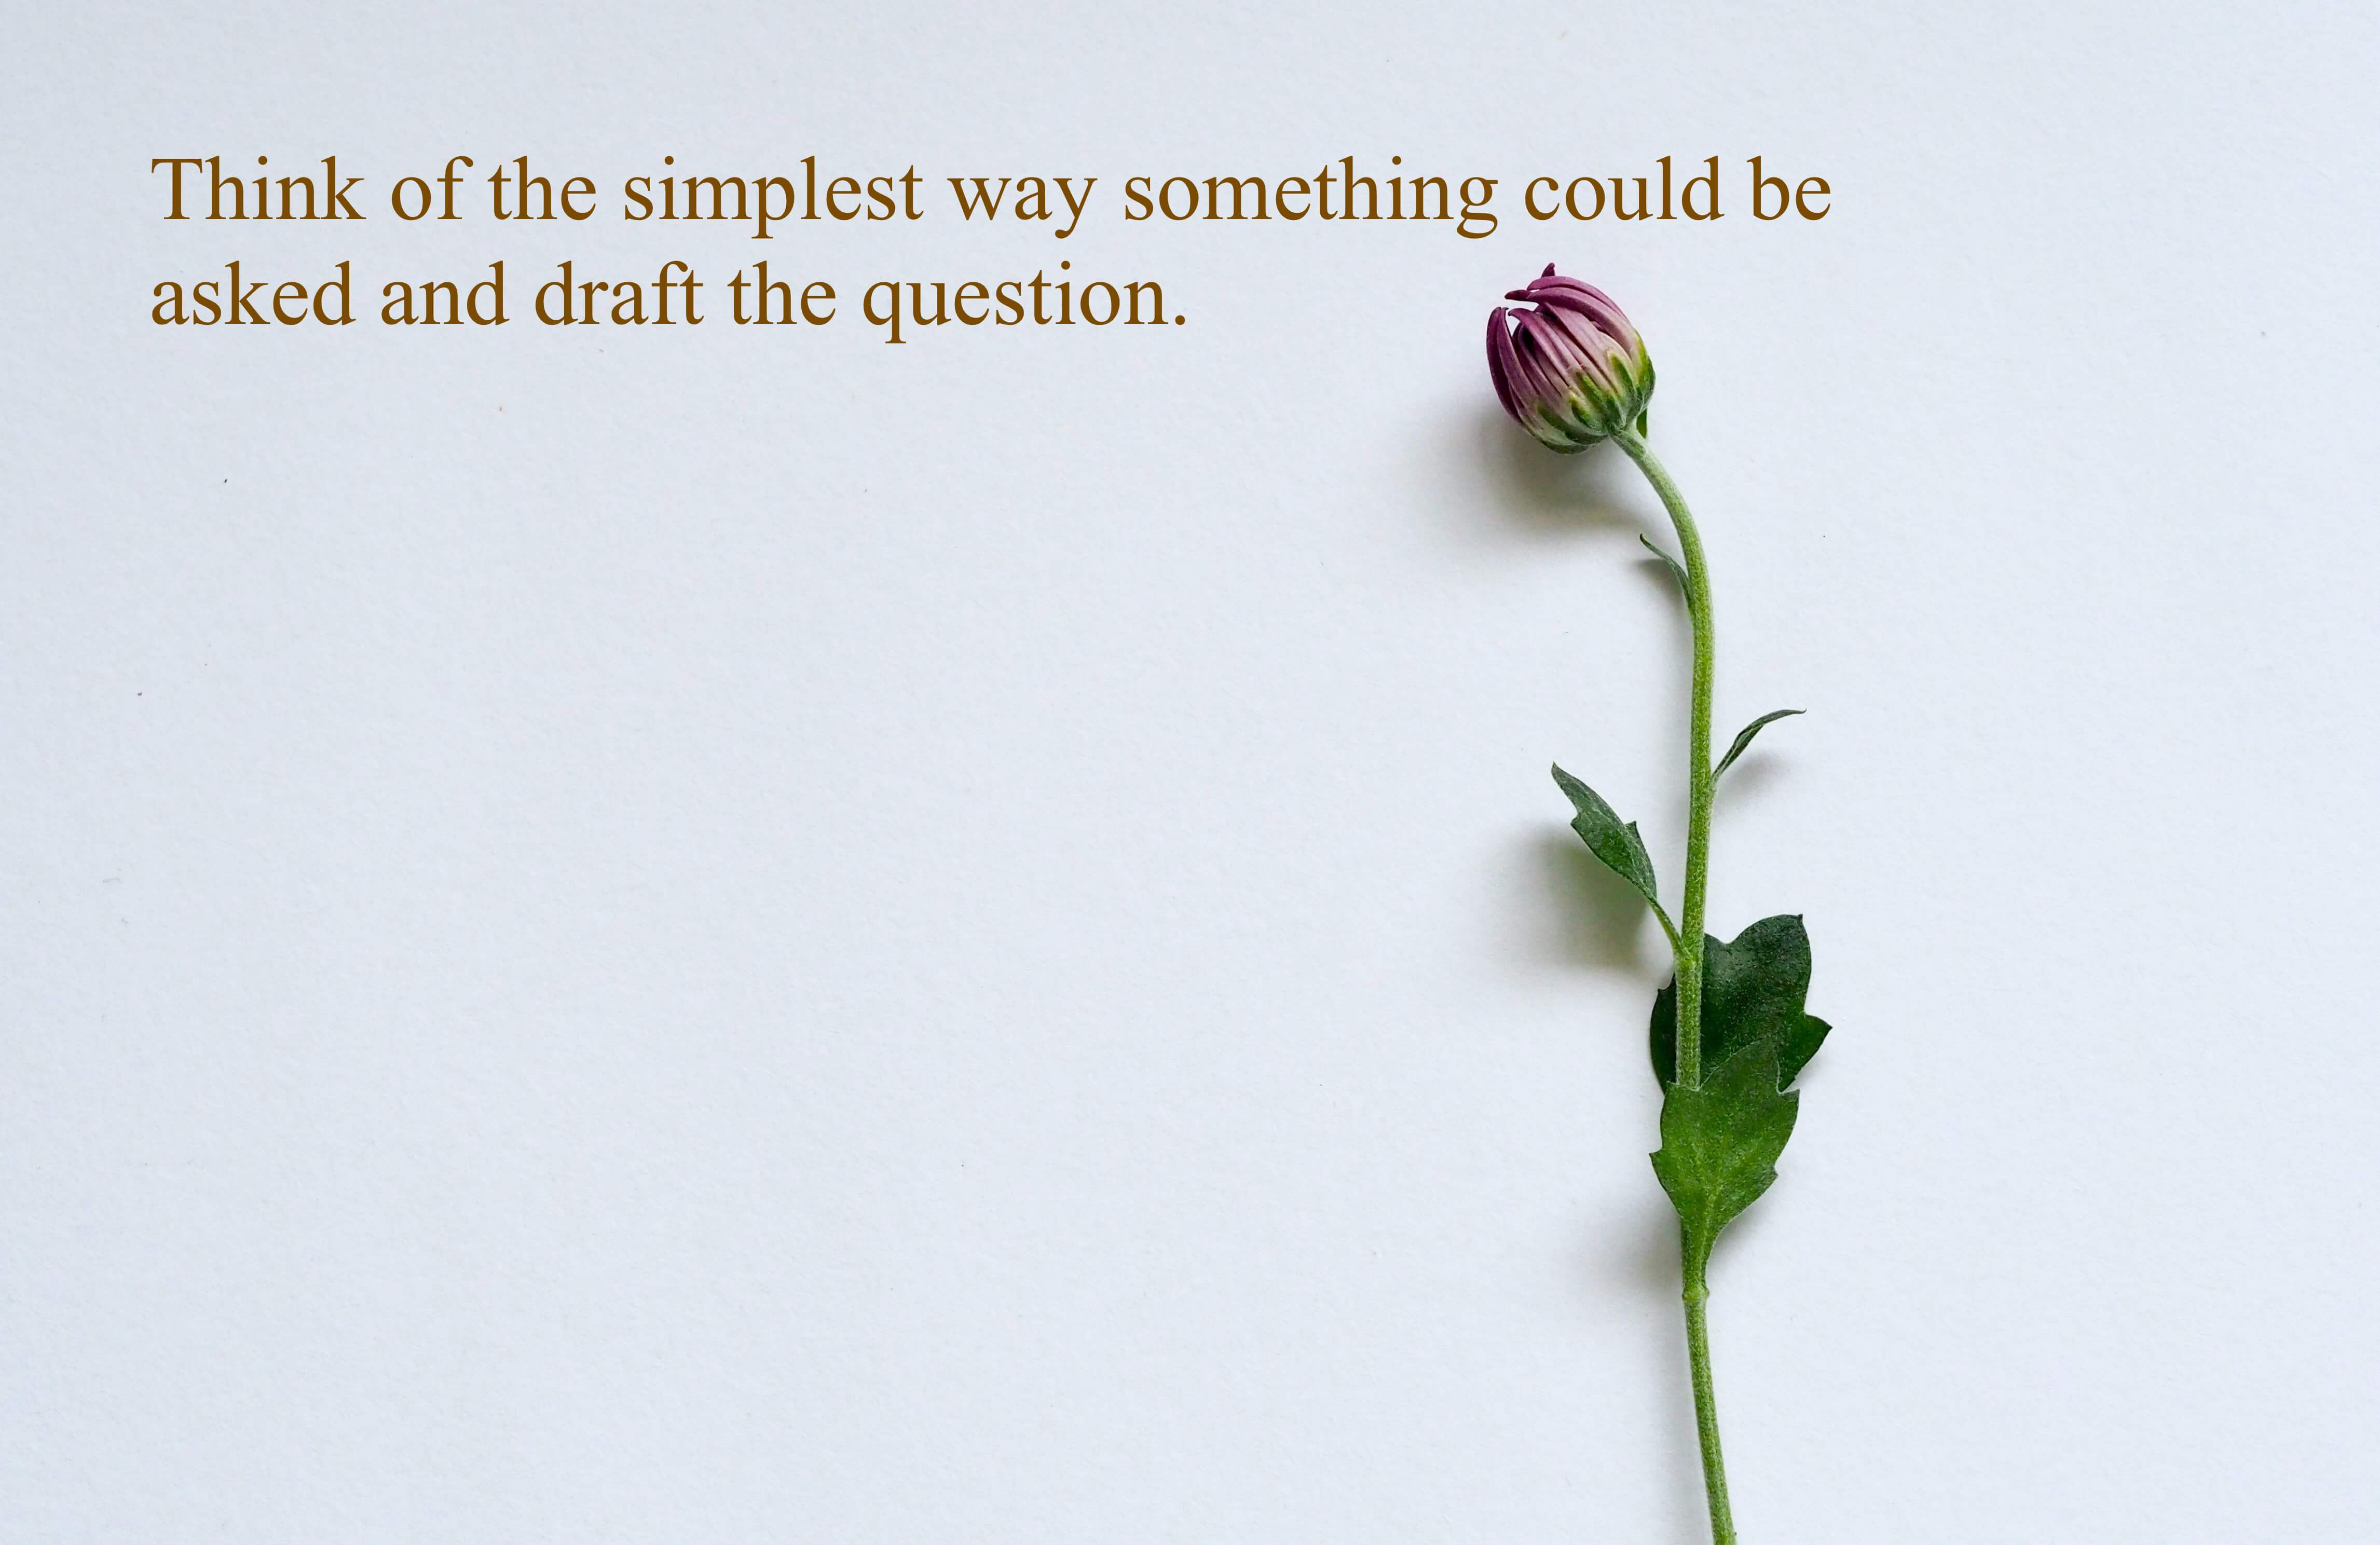 Think of the simplest way something could be asked and draft the question.